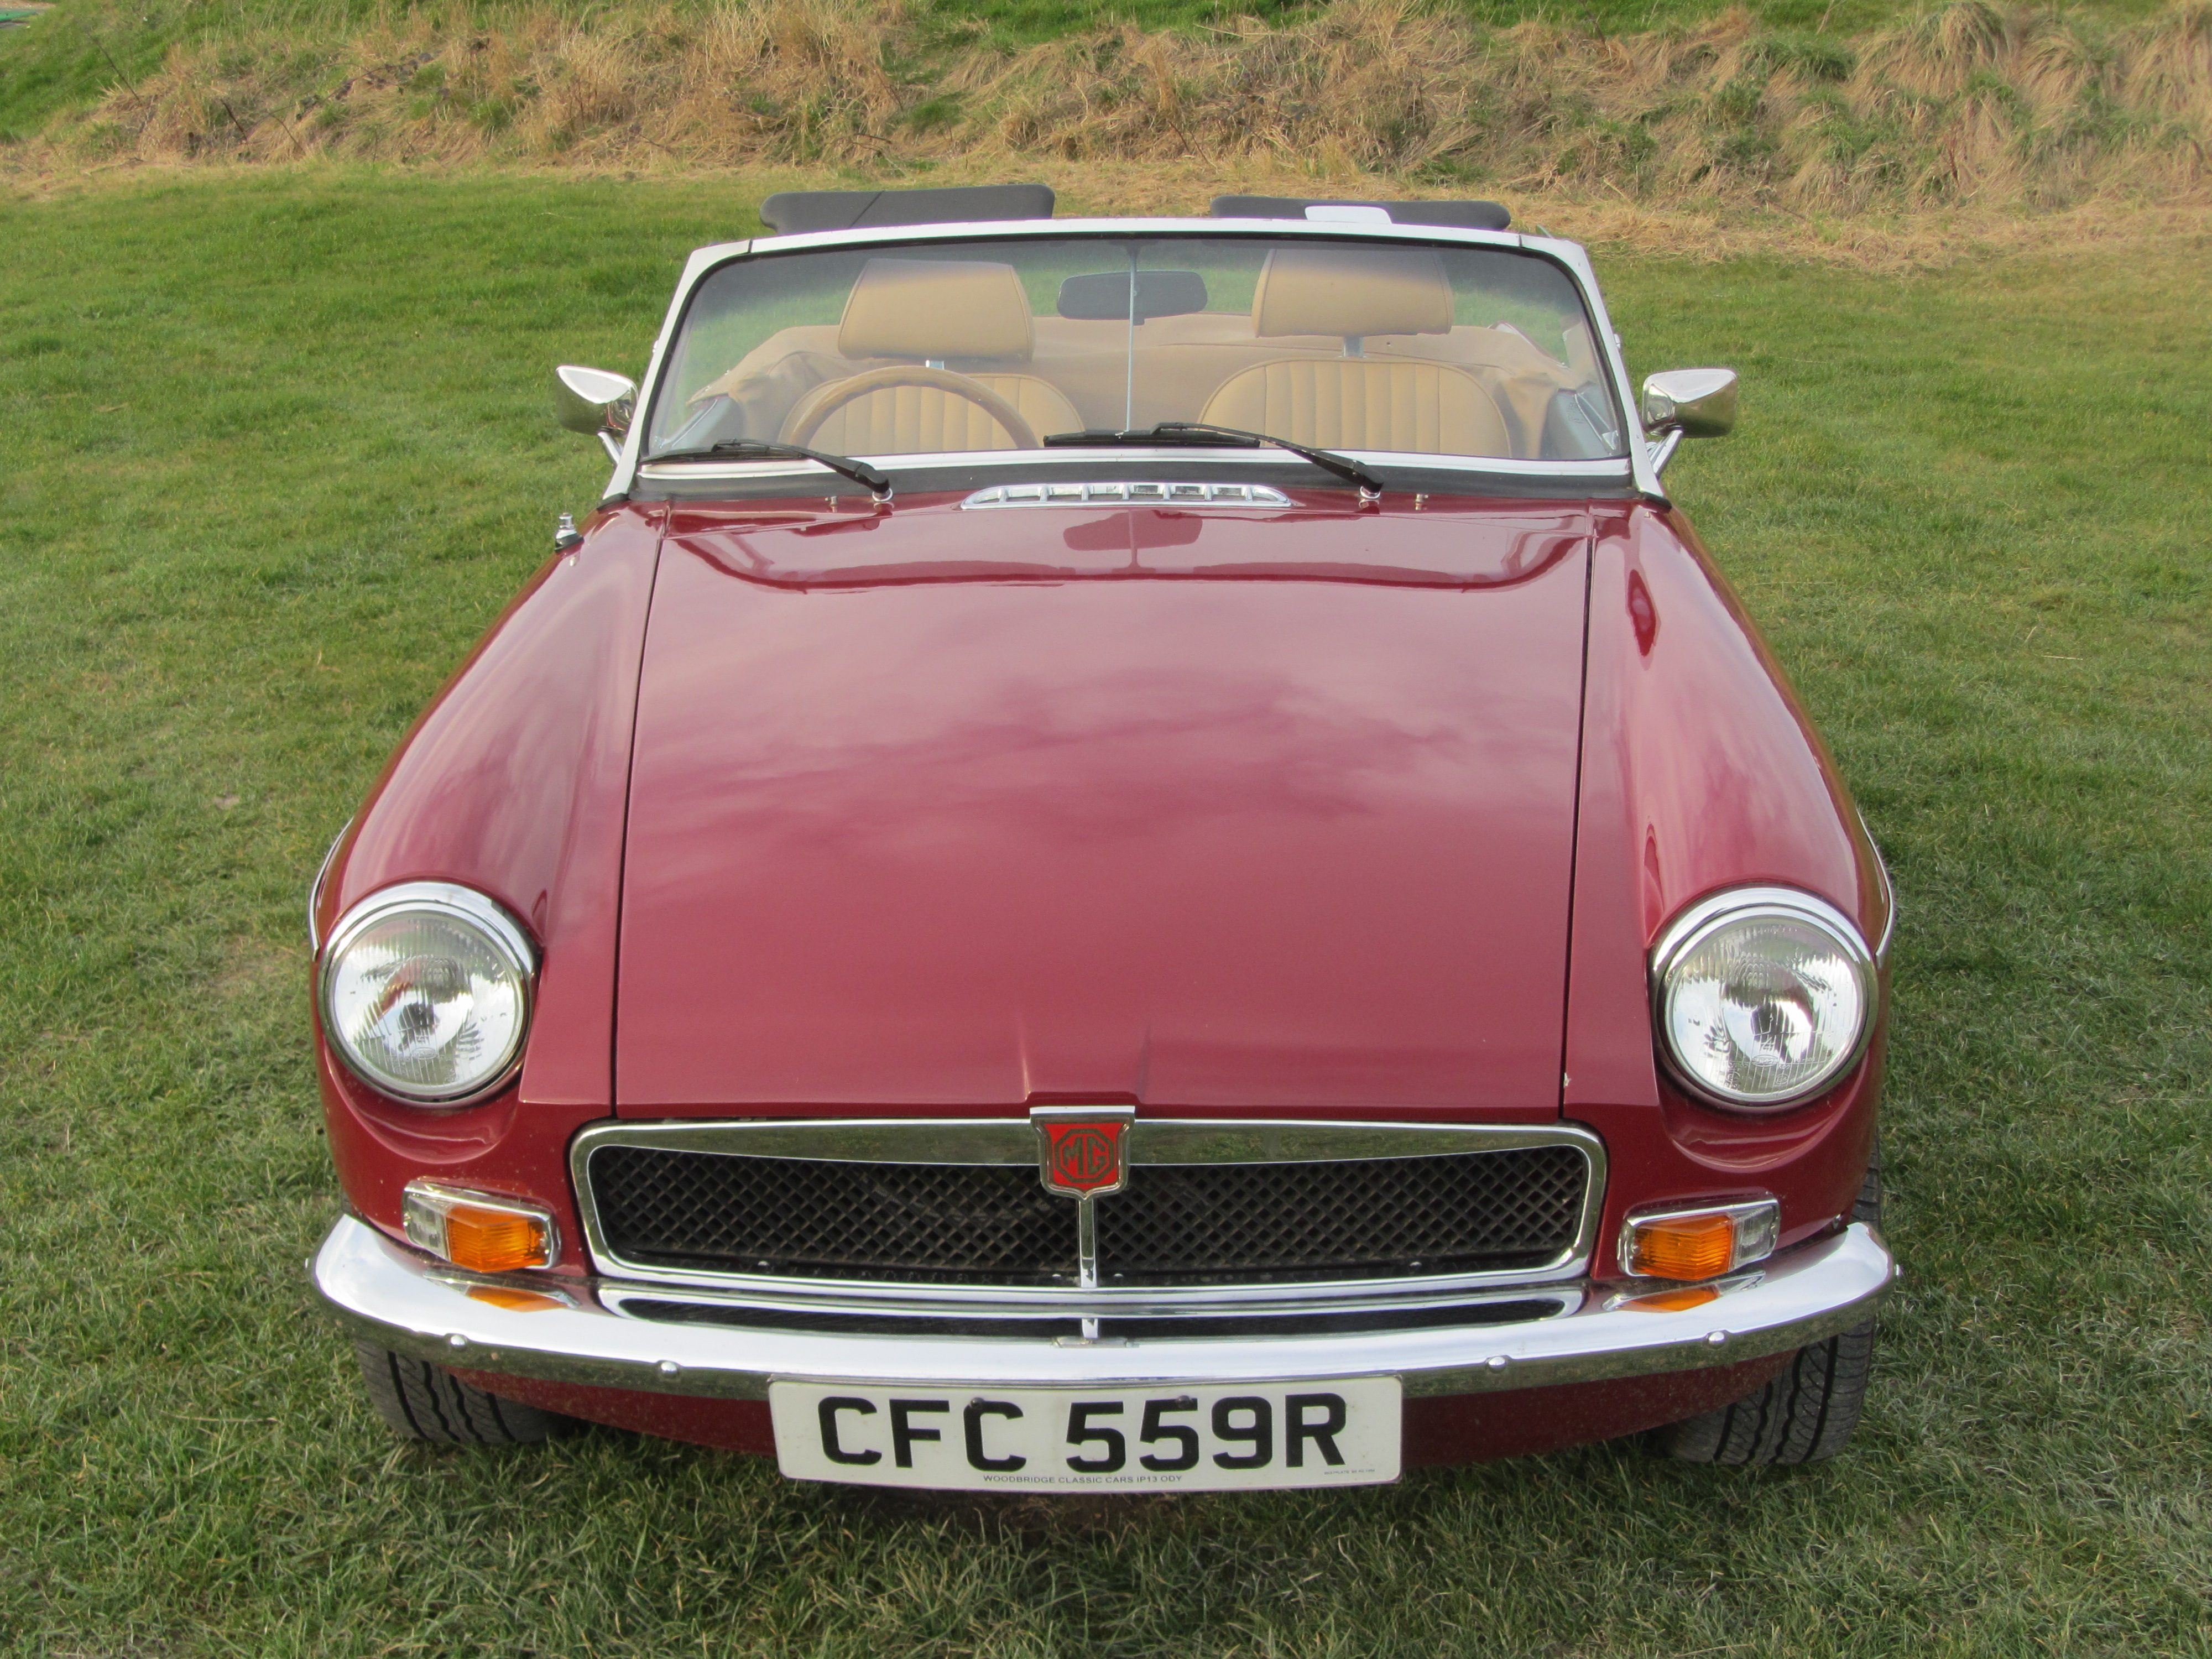 1977 MG-B sports roadster 4 speed with overdrive for sale